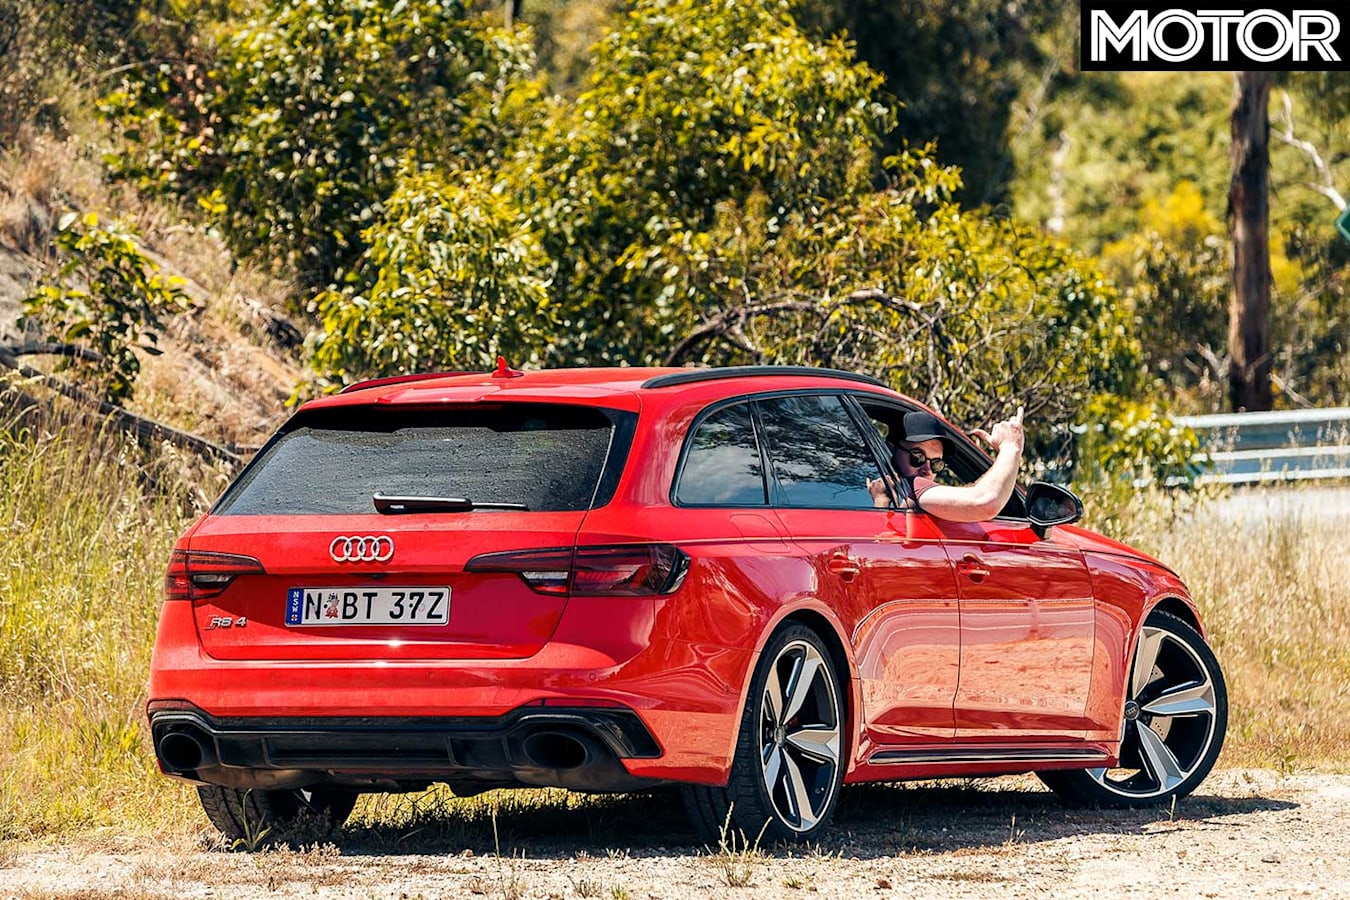 Performance Car Of The Year 2019 6th Place Audi RS 4 Avant Judges Comments Jpg